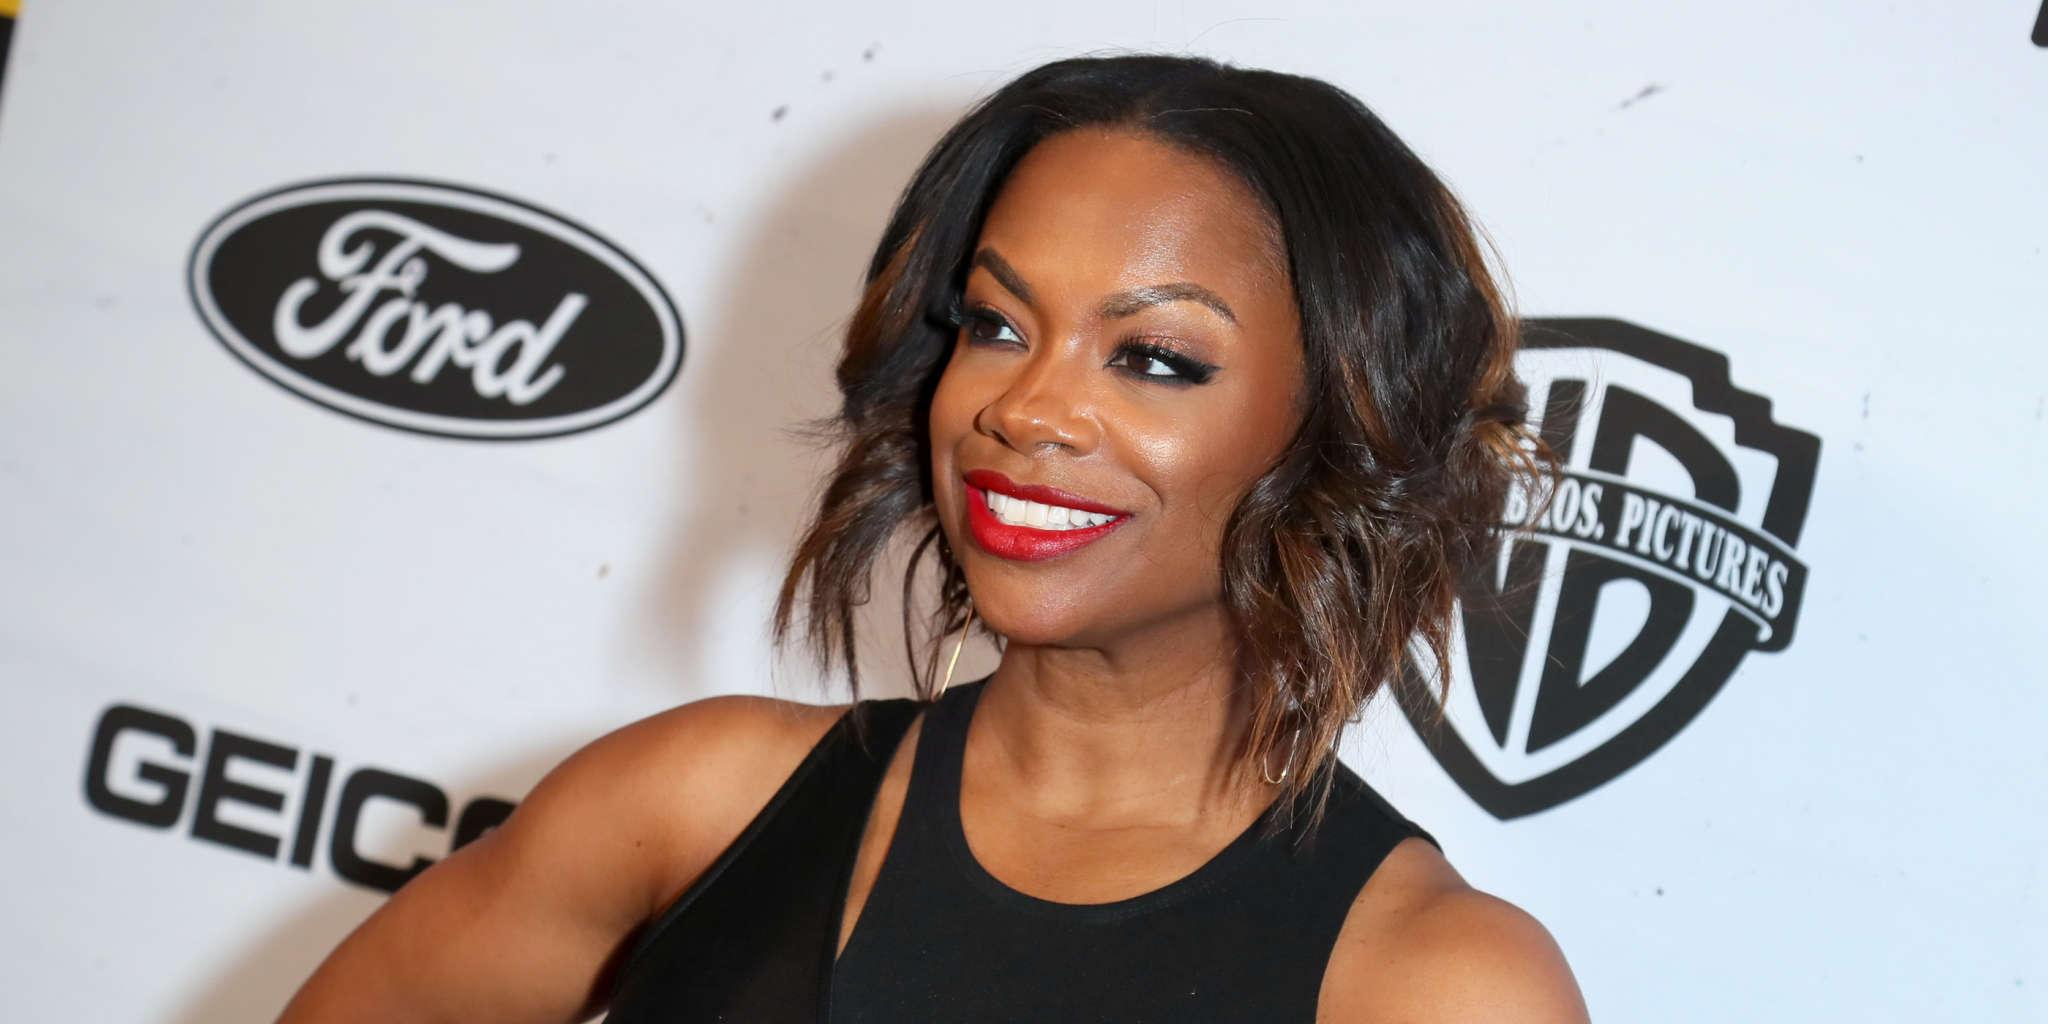 Kandi Burruss Gushes Over Shamea Morton's Surprise For Moms & Kids - Check Out The Video